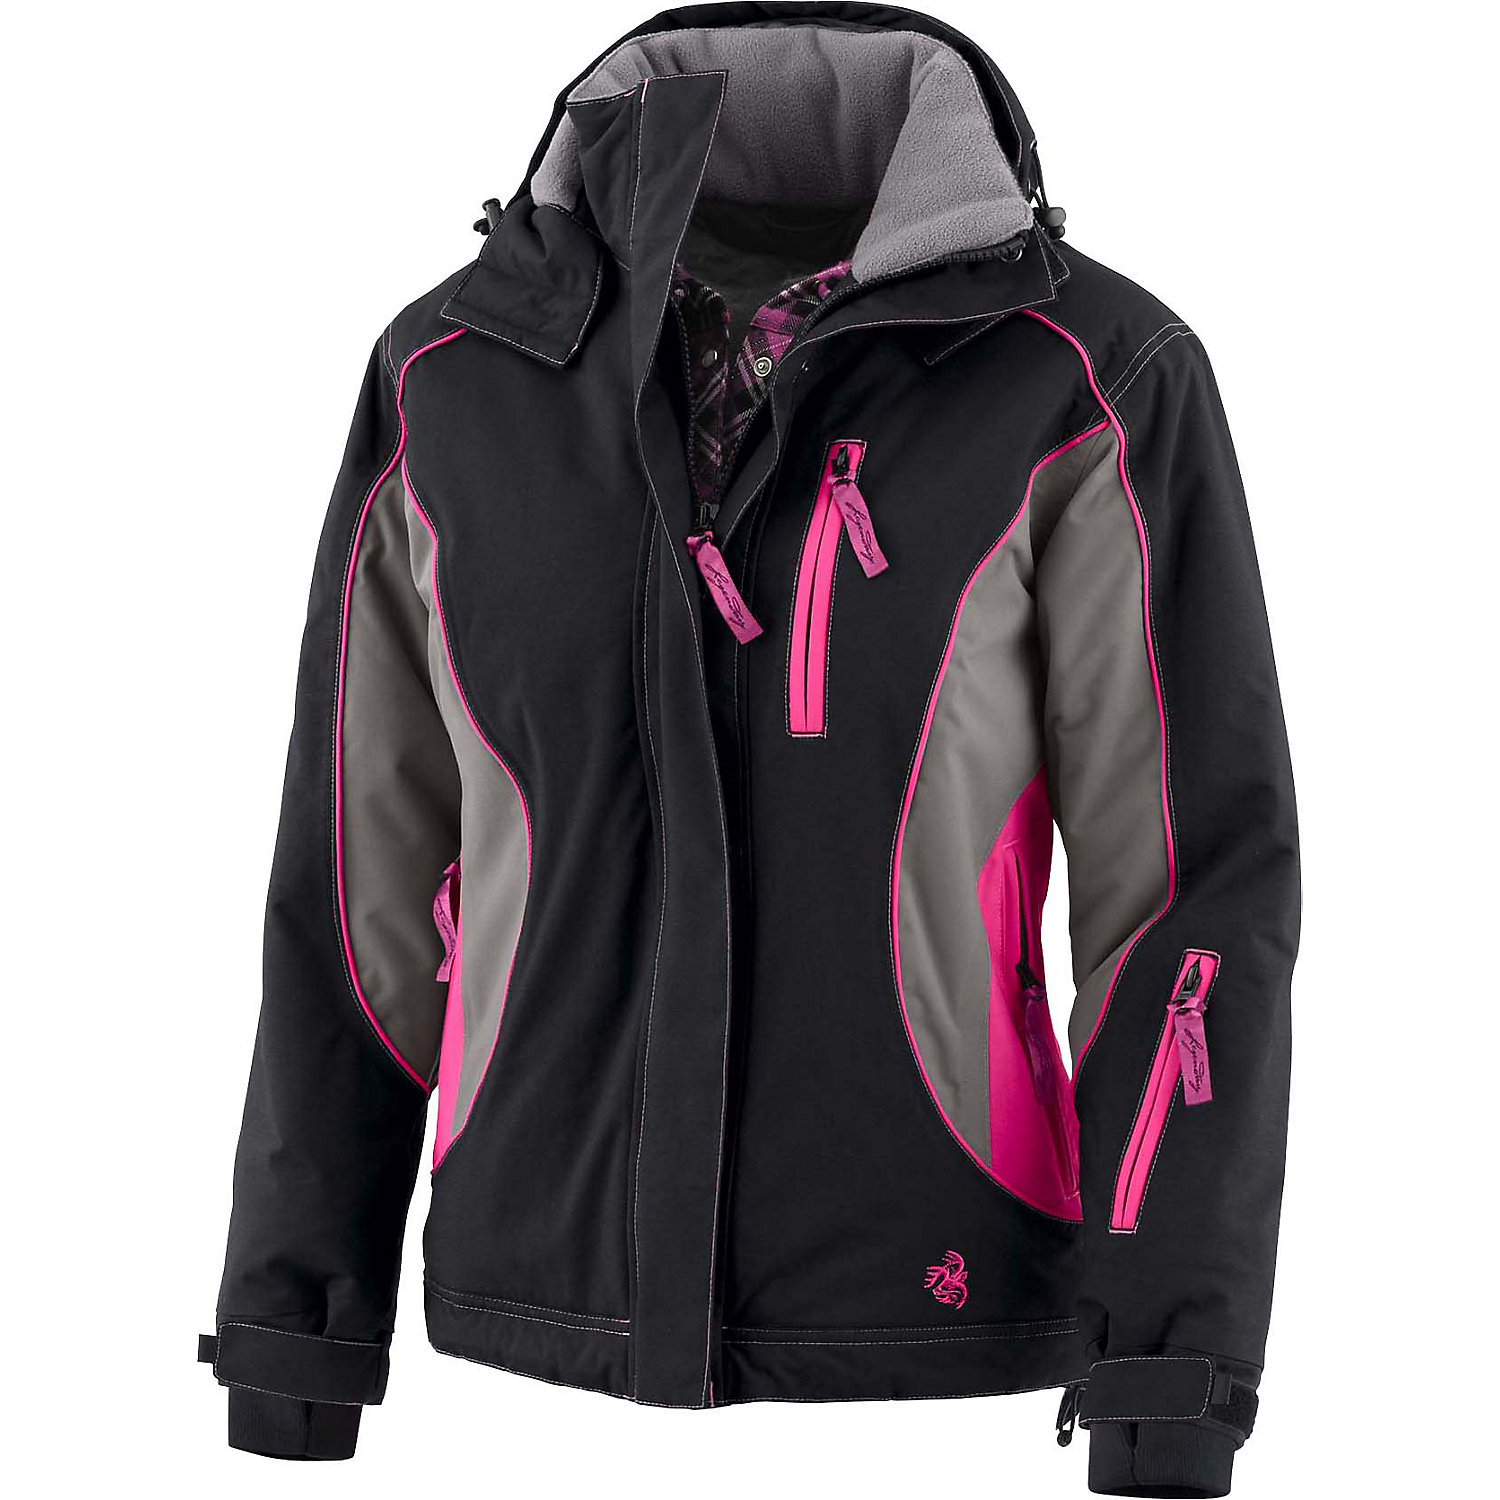 Professional jackets for women